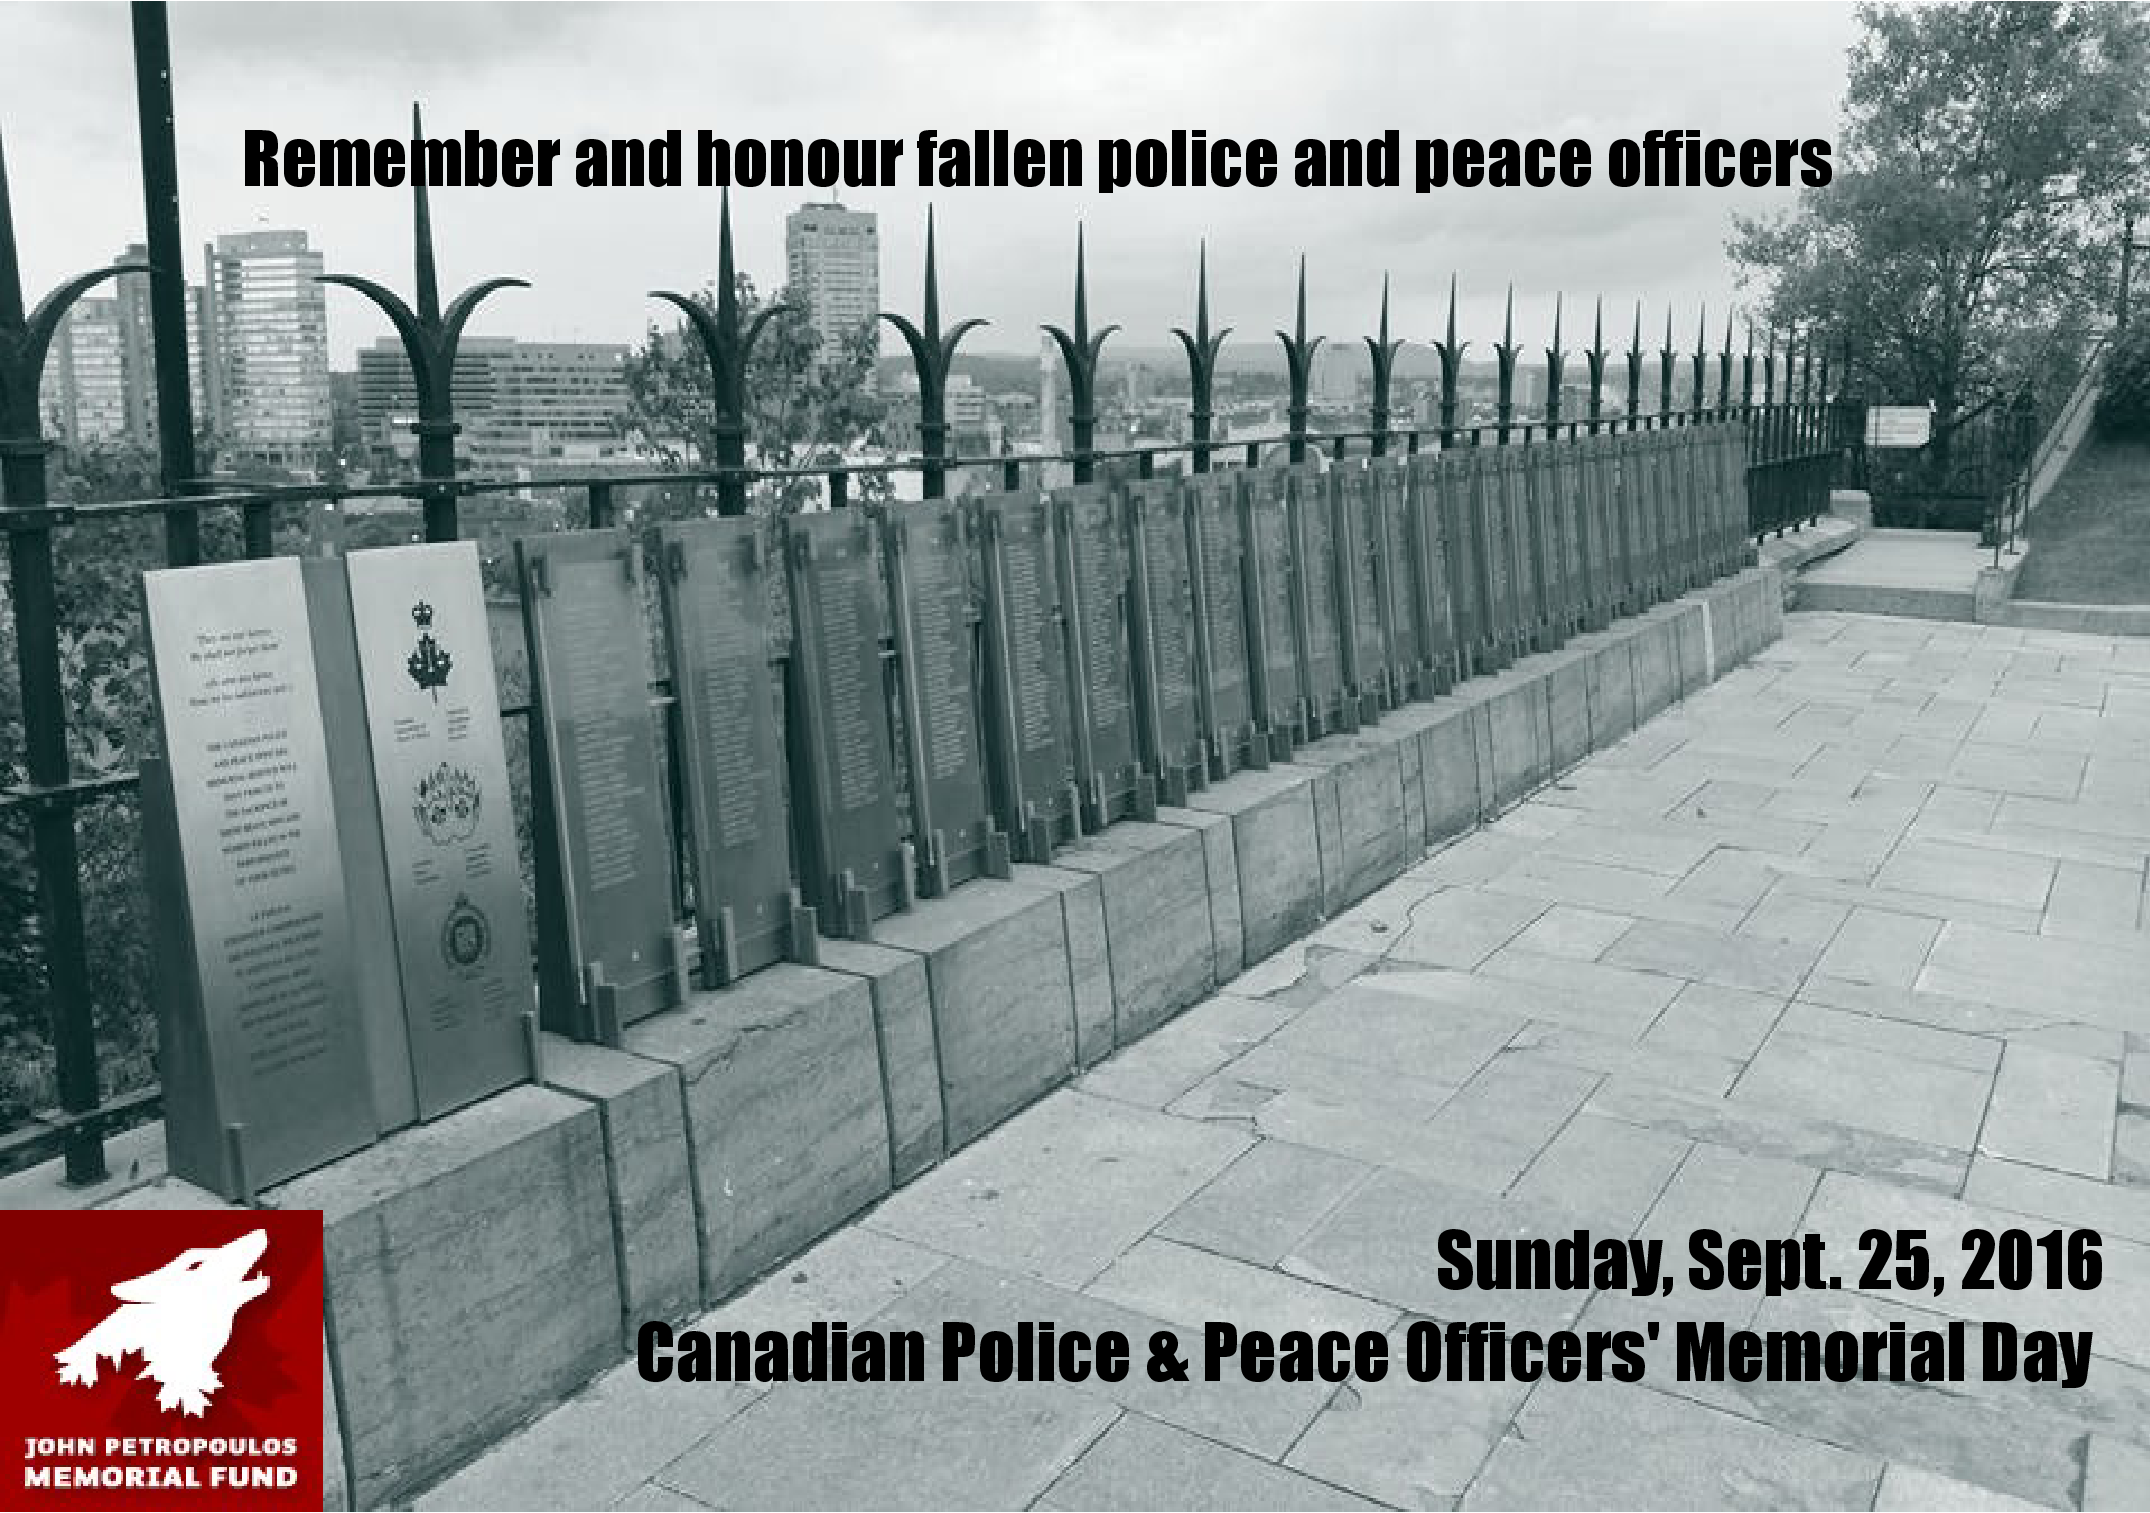 CANADIAN POLICE & PEACE OFFICERS' MEMORIAL DAY: SUNDAY, SEPT. 25, 2016